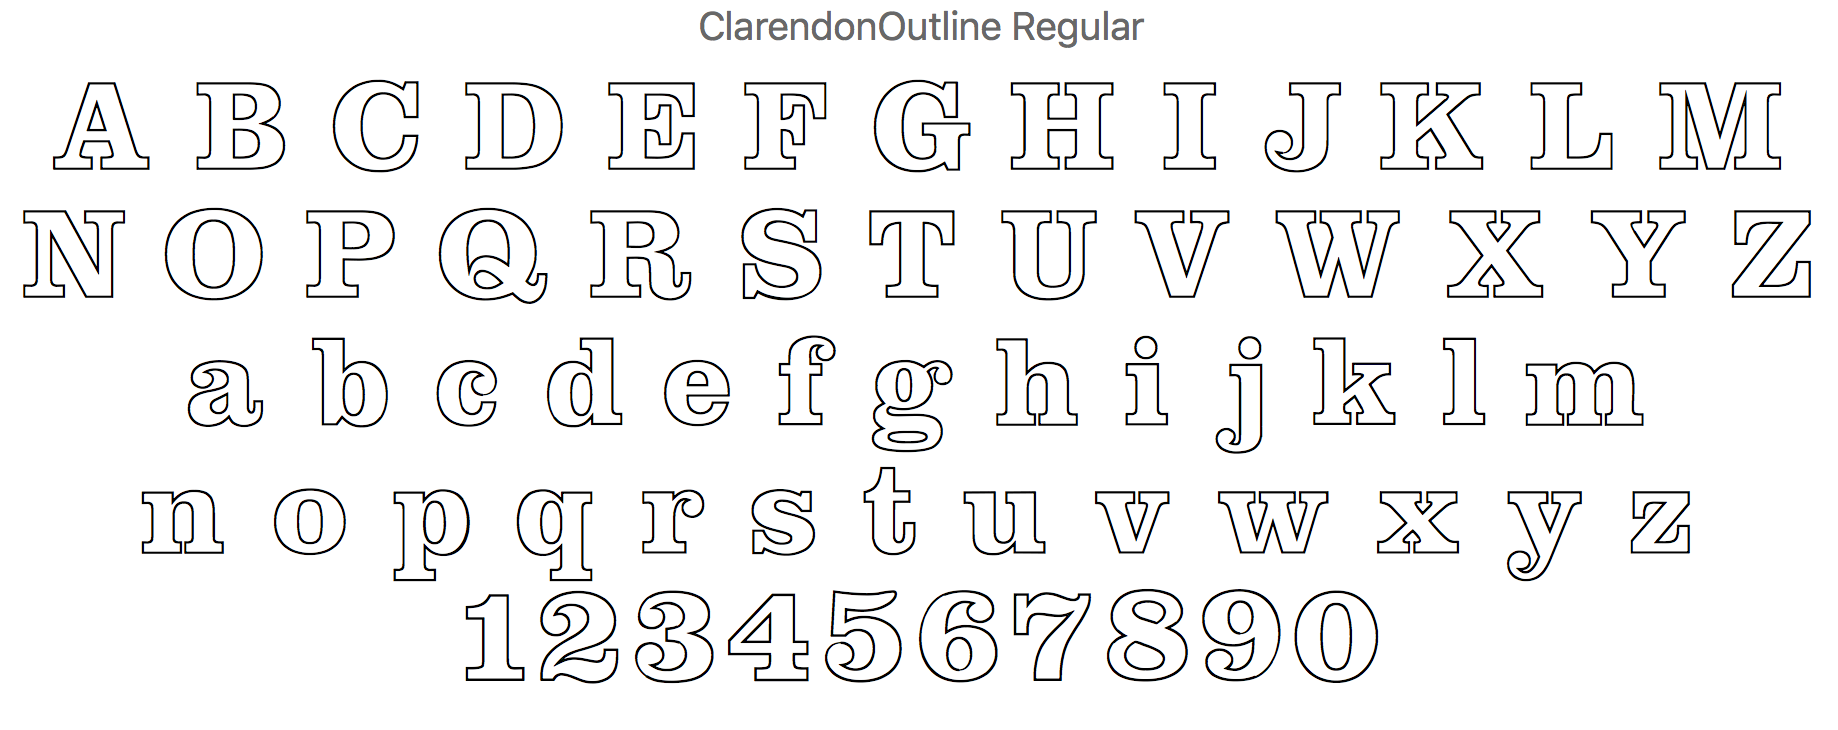 where to obtain Clarendon outlined font versions - Talk - Typography